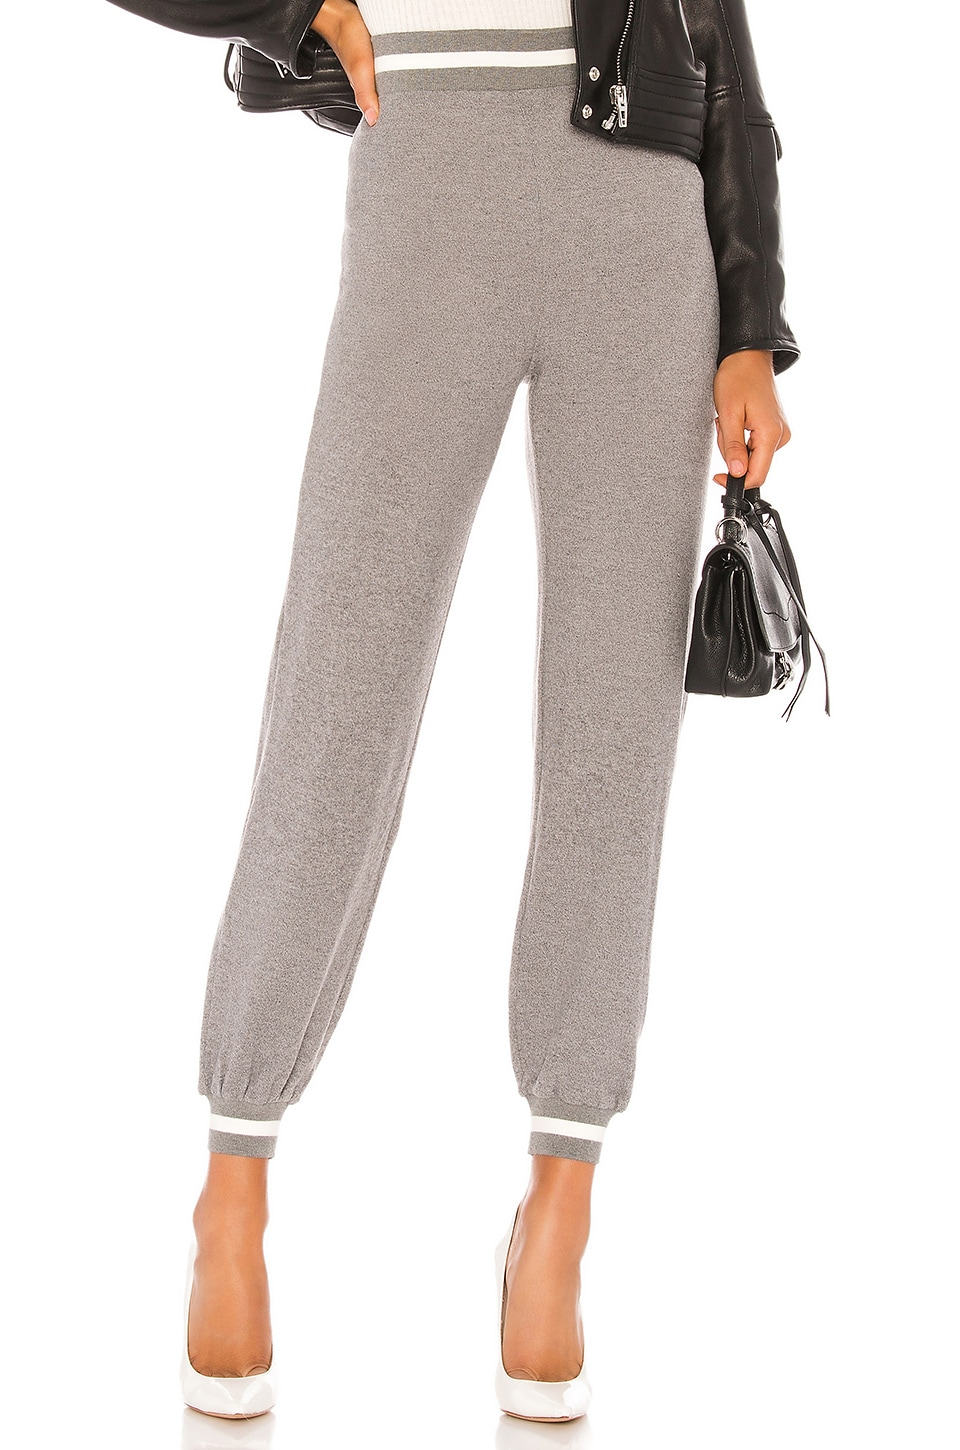 Lovers + Friends Raina Pant in Heather Grey